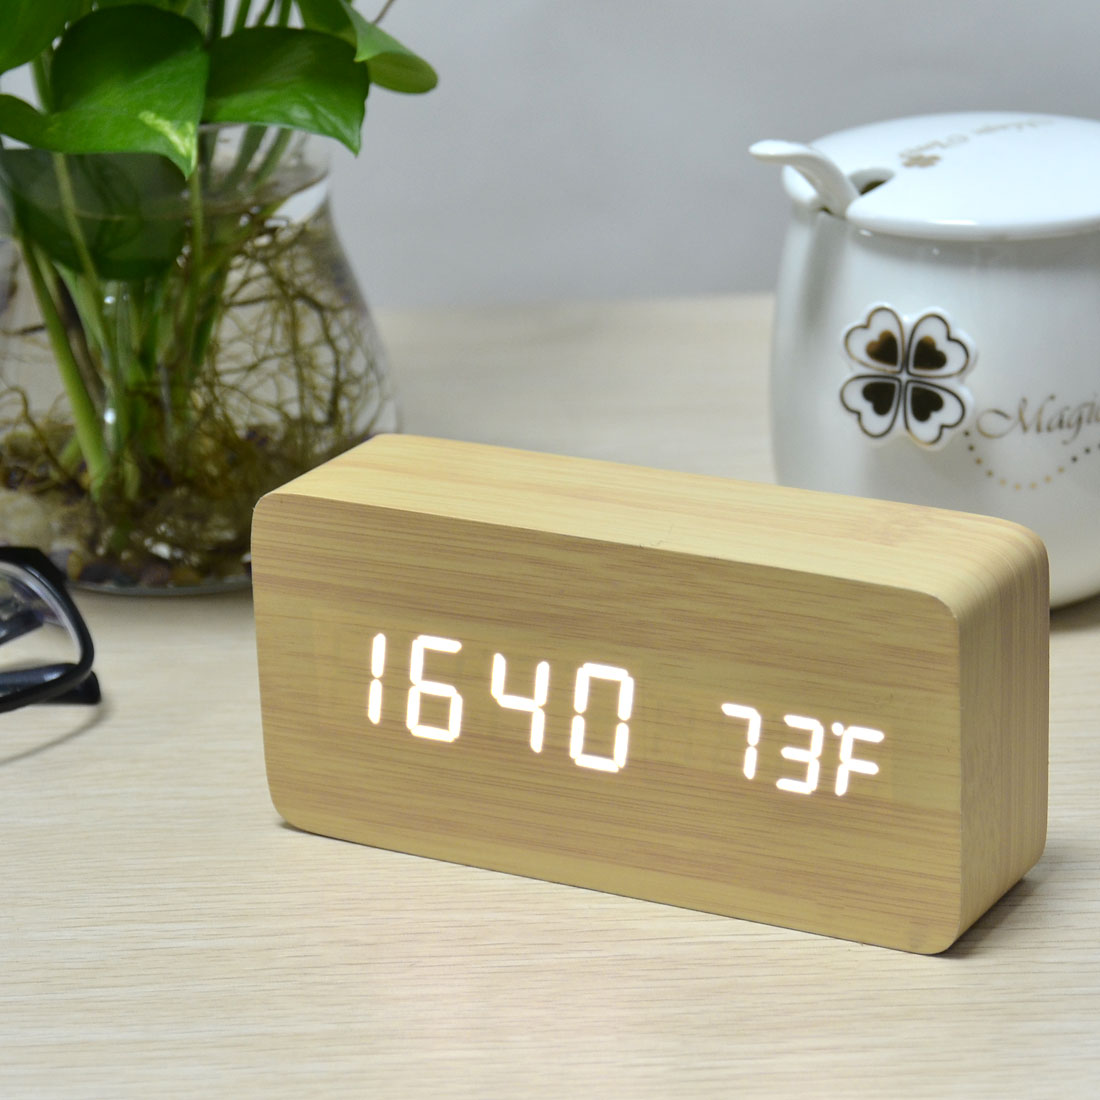 Wooden Digital Alarm Clock Voice Control Activated Bamboo Wood White LED